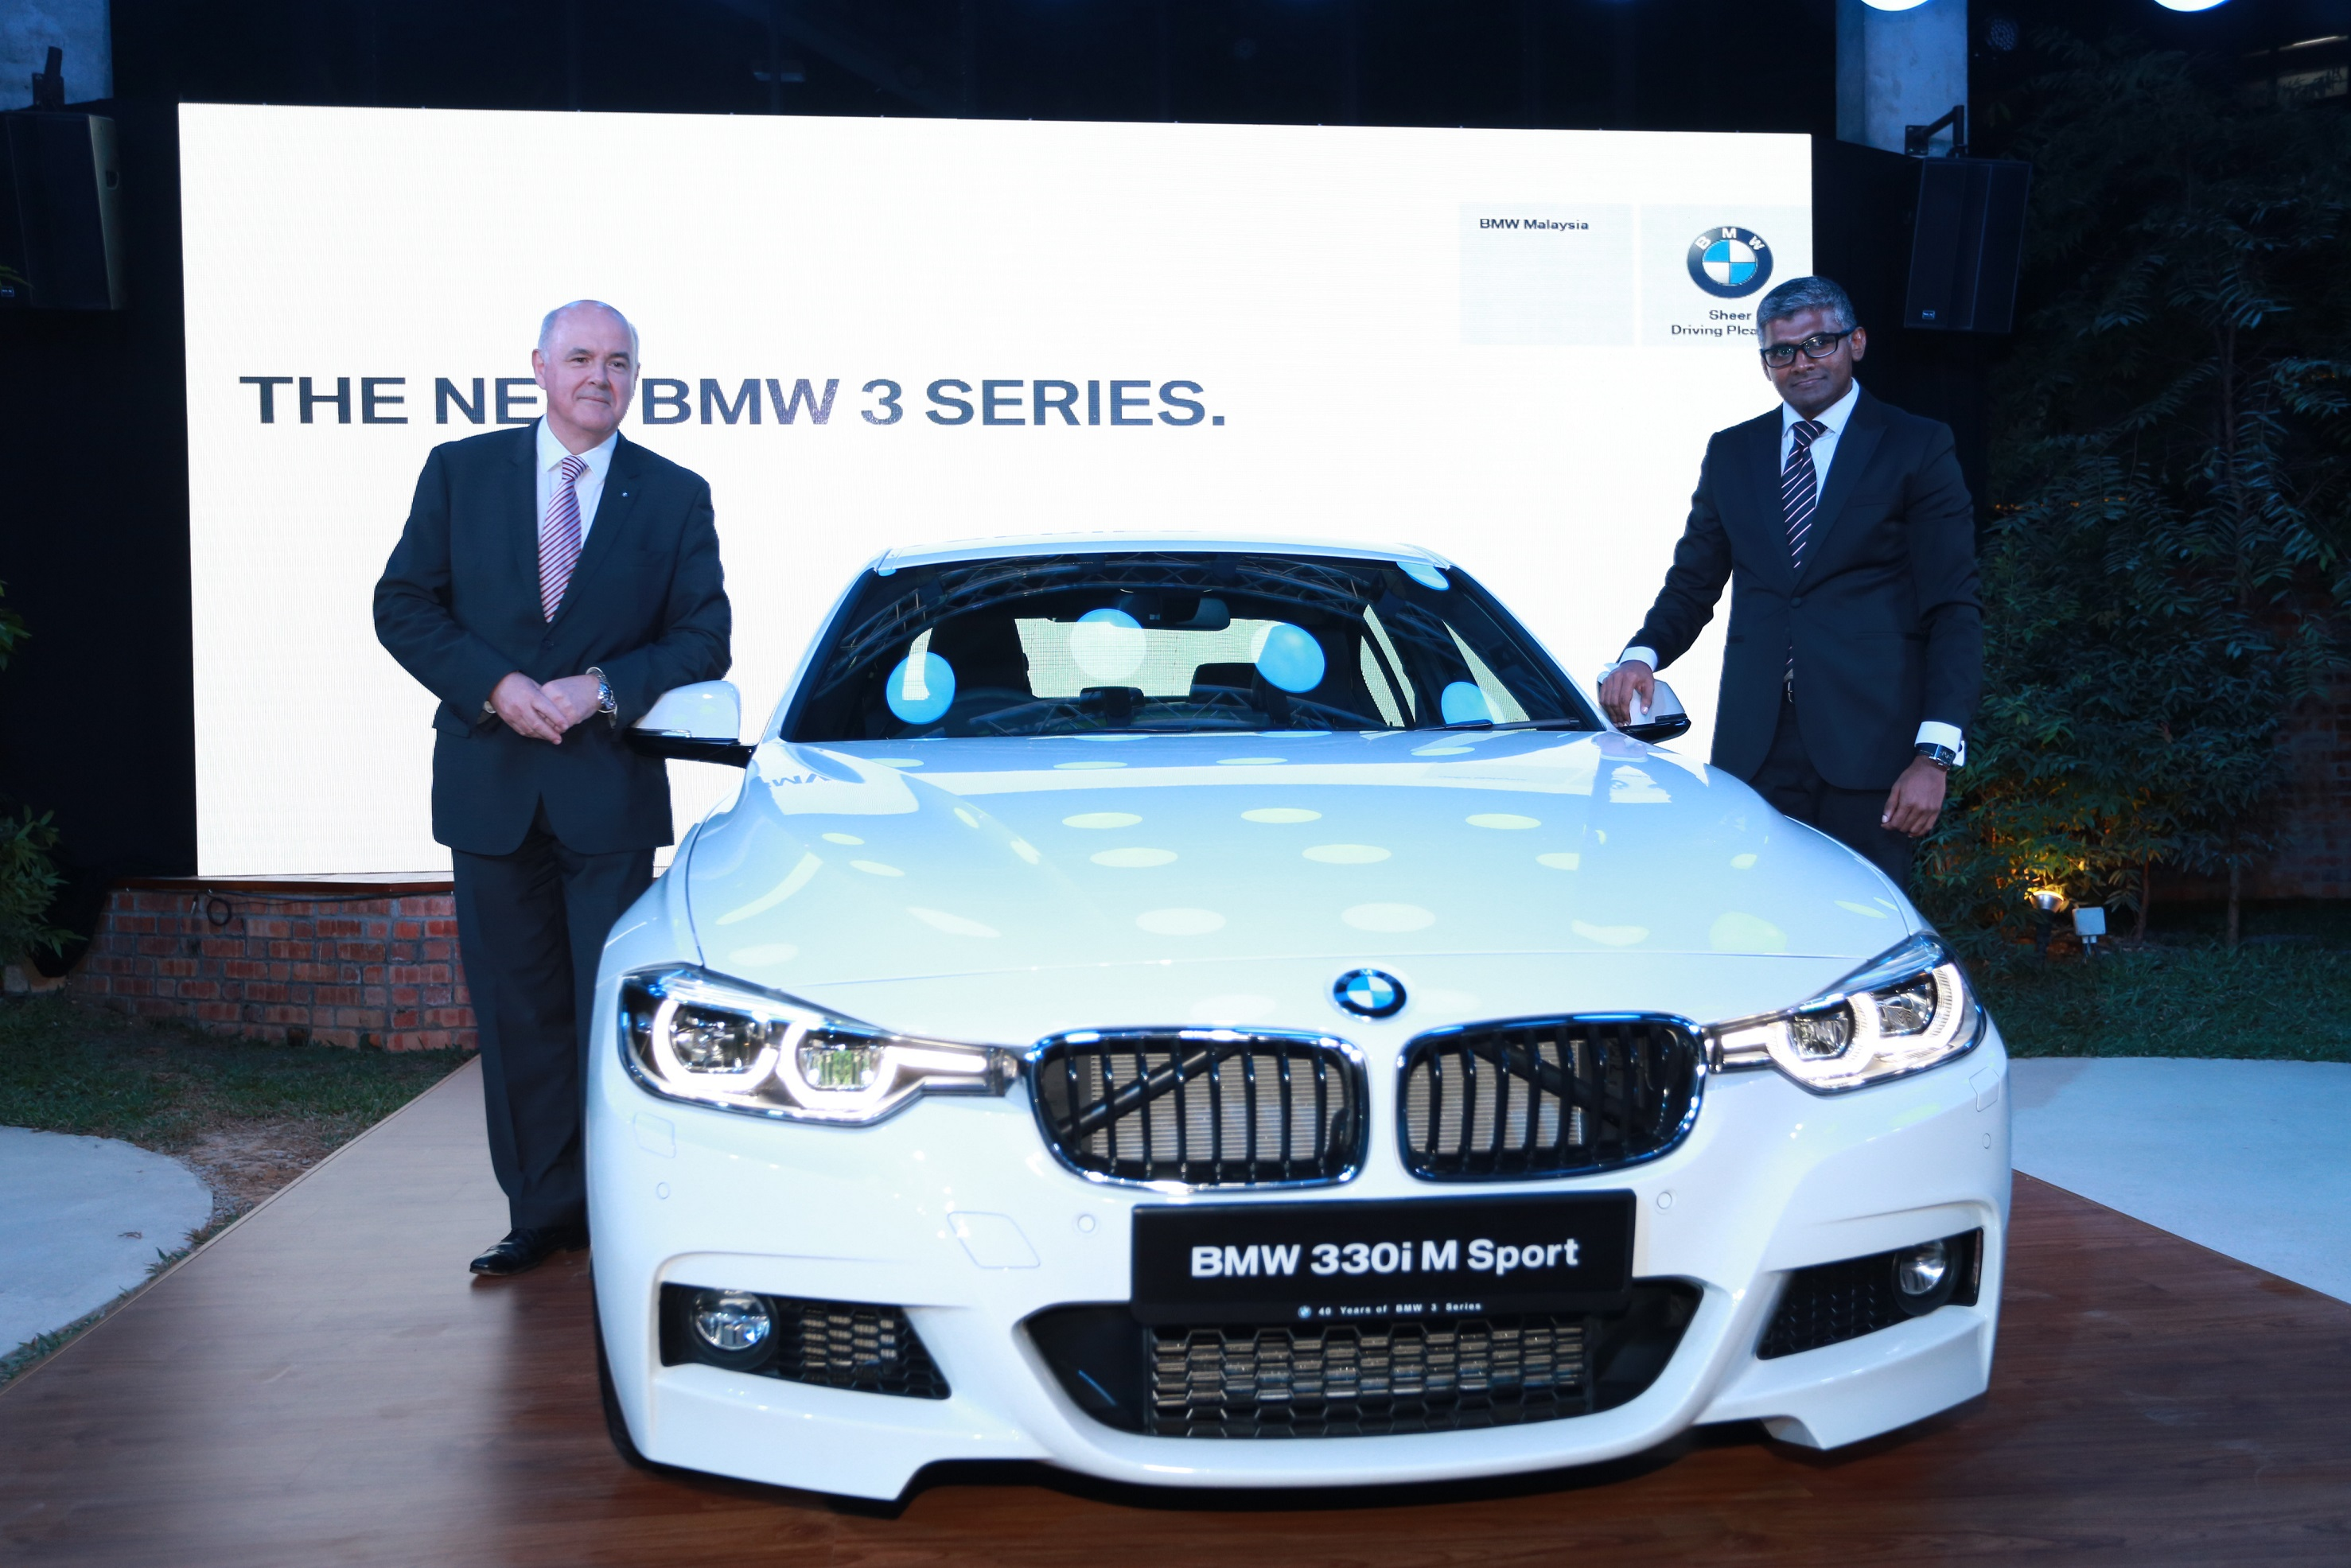 The New Bmw 3 Series With Bmw Connecteddrive Launched In Malaysia